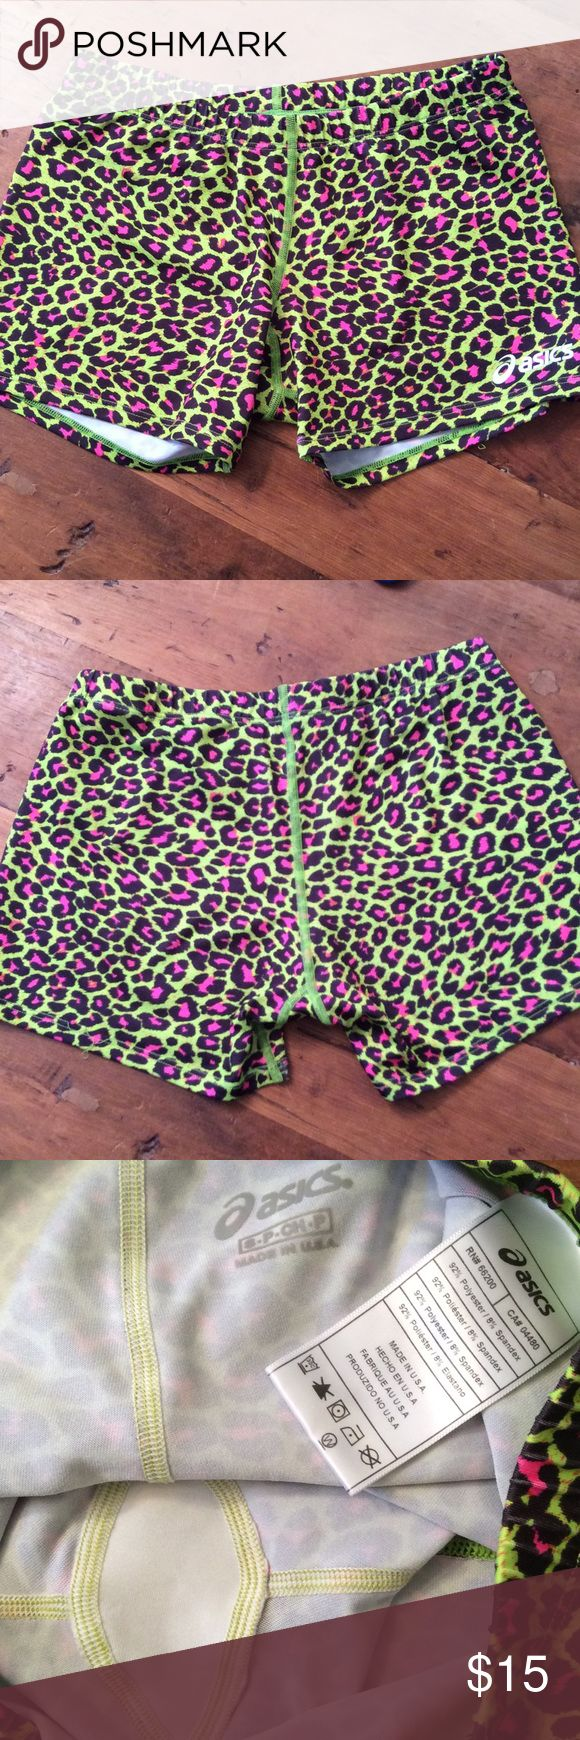 Oasis shorts Pink and green exercise or swim shorts by Oasis size small petite oasis Shorts